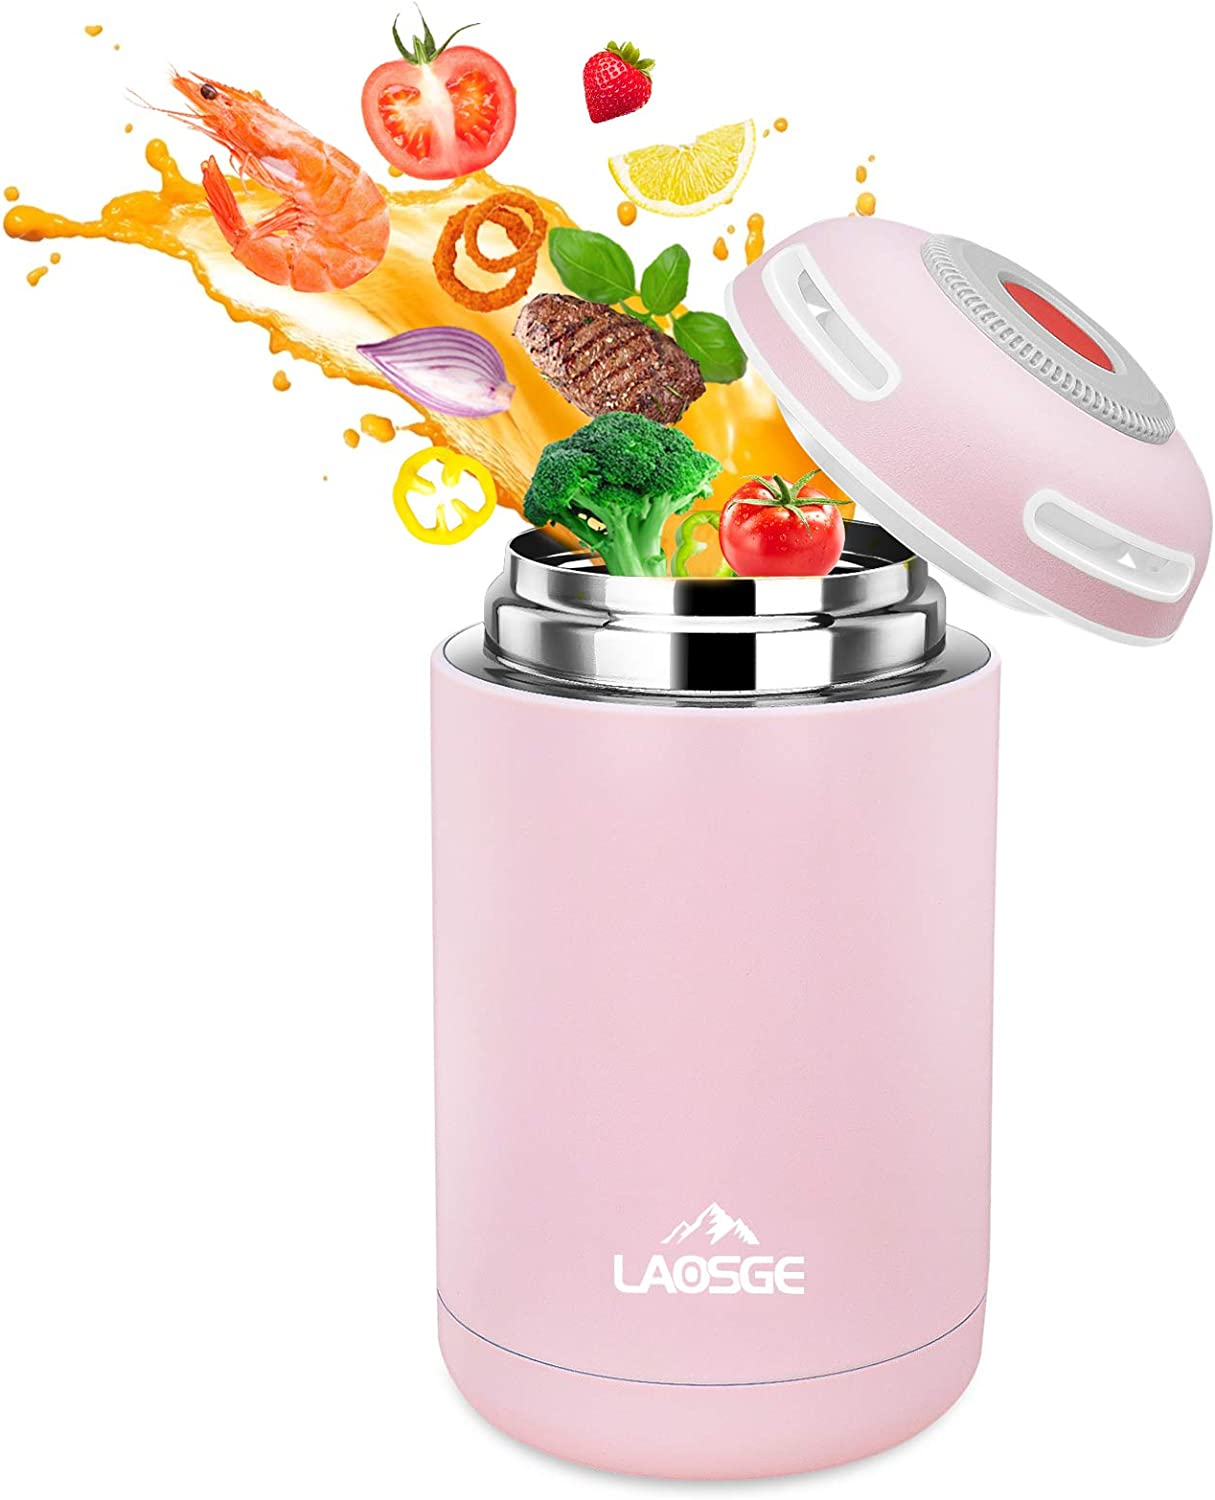 LAOSGE Vacuum Insulated Jar Lunch Container, 16 oz Thermos for Hot Food, Stainless Steel Lunch Box, BPA Free Lunch Soup Container, Leak Proof Double Wall Vacuum Insulated for Kids/Adults (Pink)